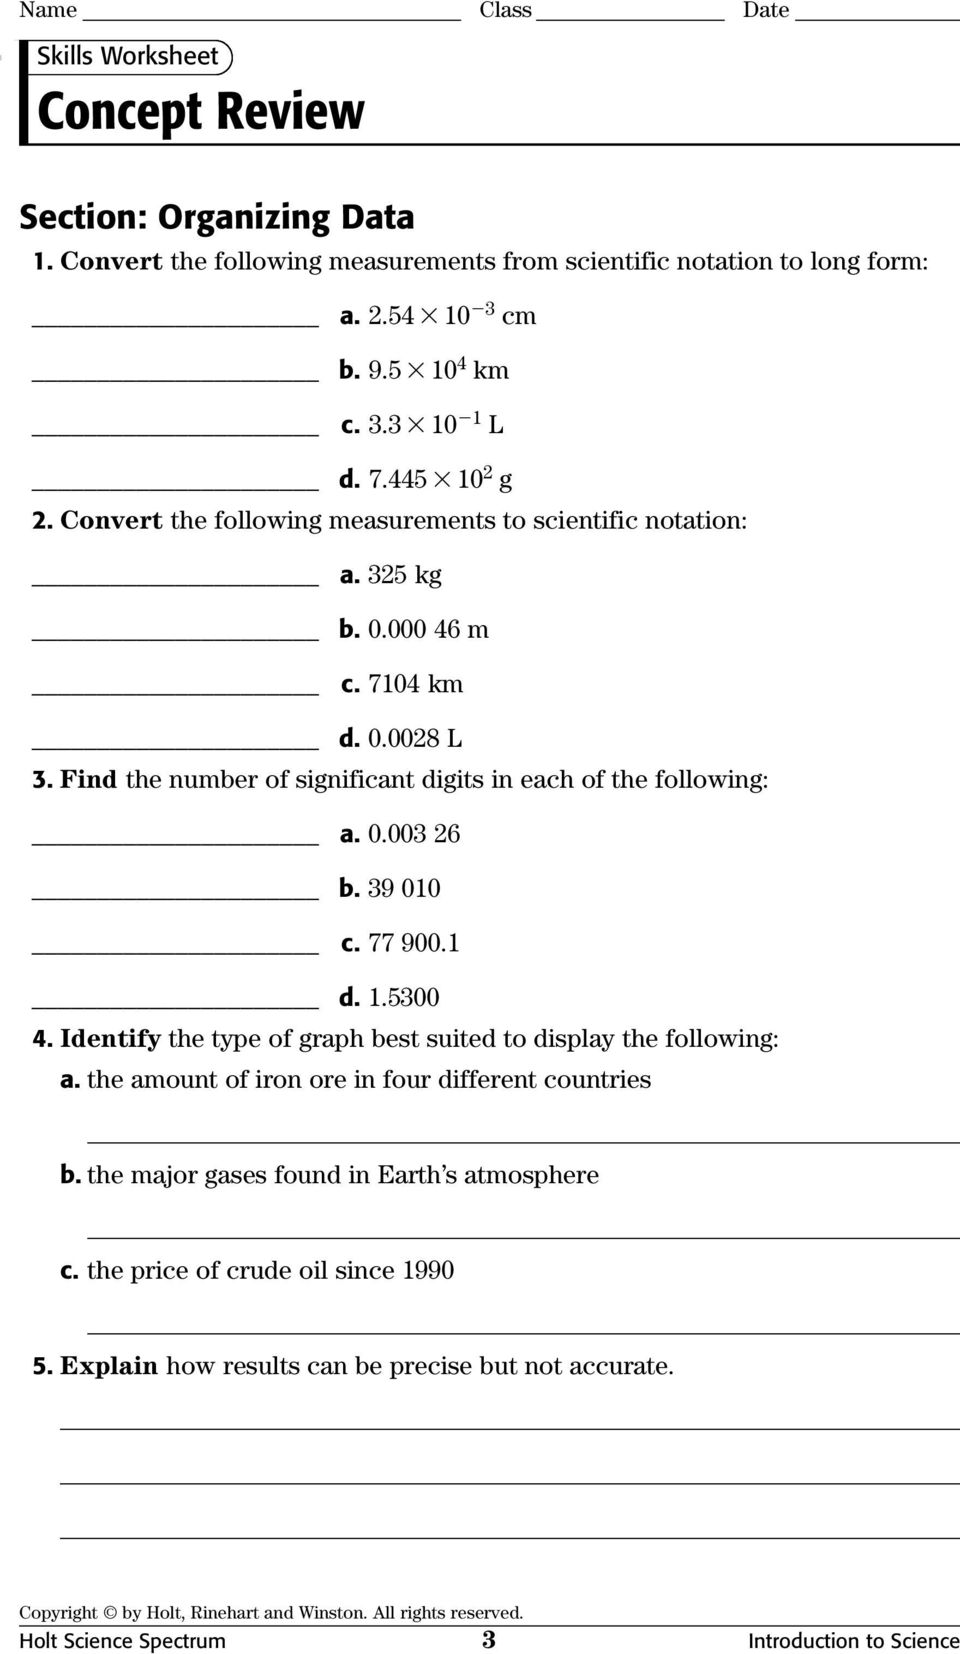 Worksheets Holt Science Spectrum Worksheets physical science concept review worksheets with answer keys pdf holt spectrum 3 introduction to find the number of significant digits in each following a 0 003 26